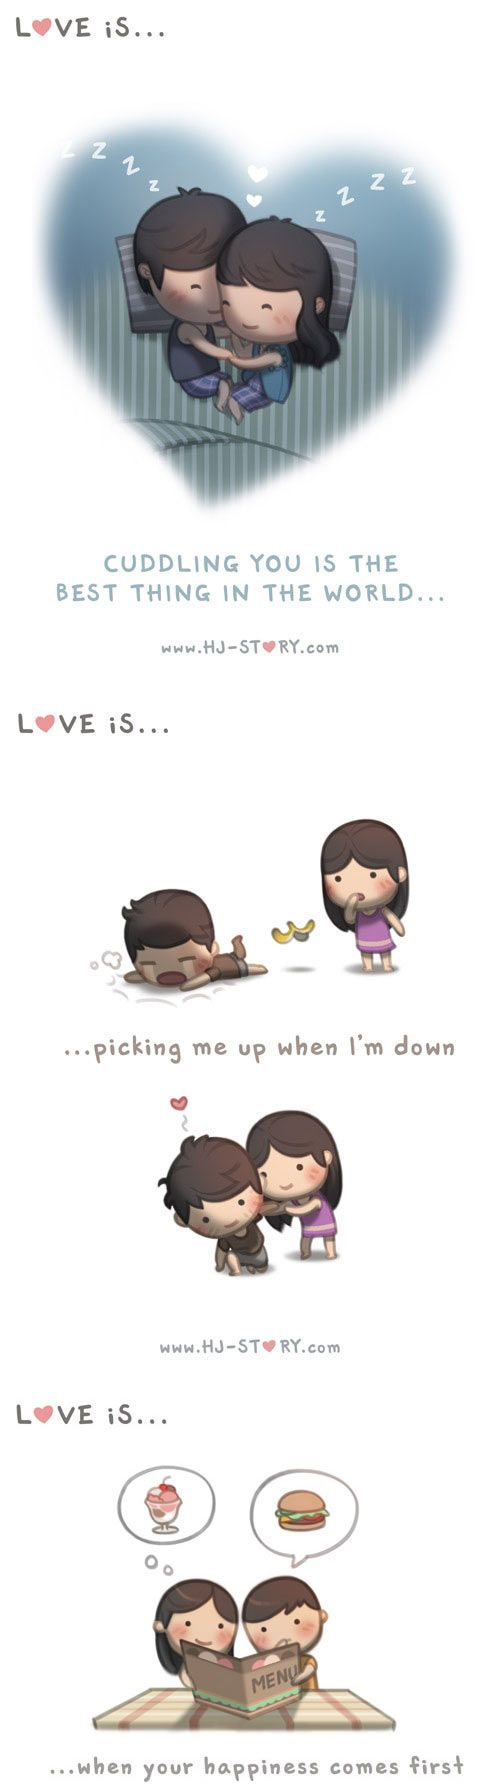 ~ <3 Loved & pinned by http://www.shivohamyoga.nl/ #love #quotes #quote #lovely #cute #loveis #cartoon #warm #hope #live #life #hope #hjstory #adorable